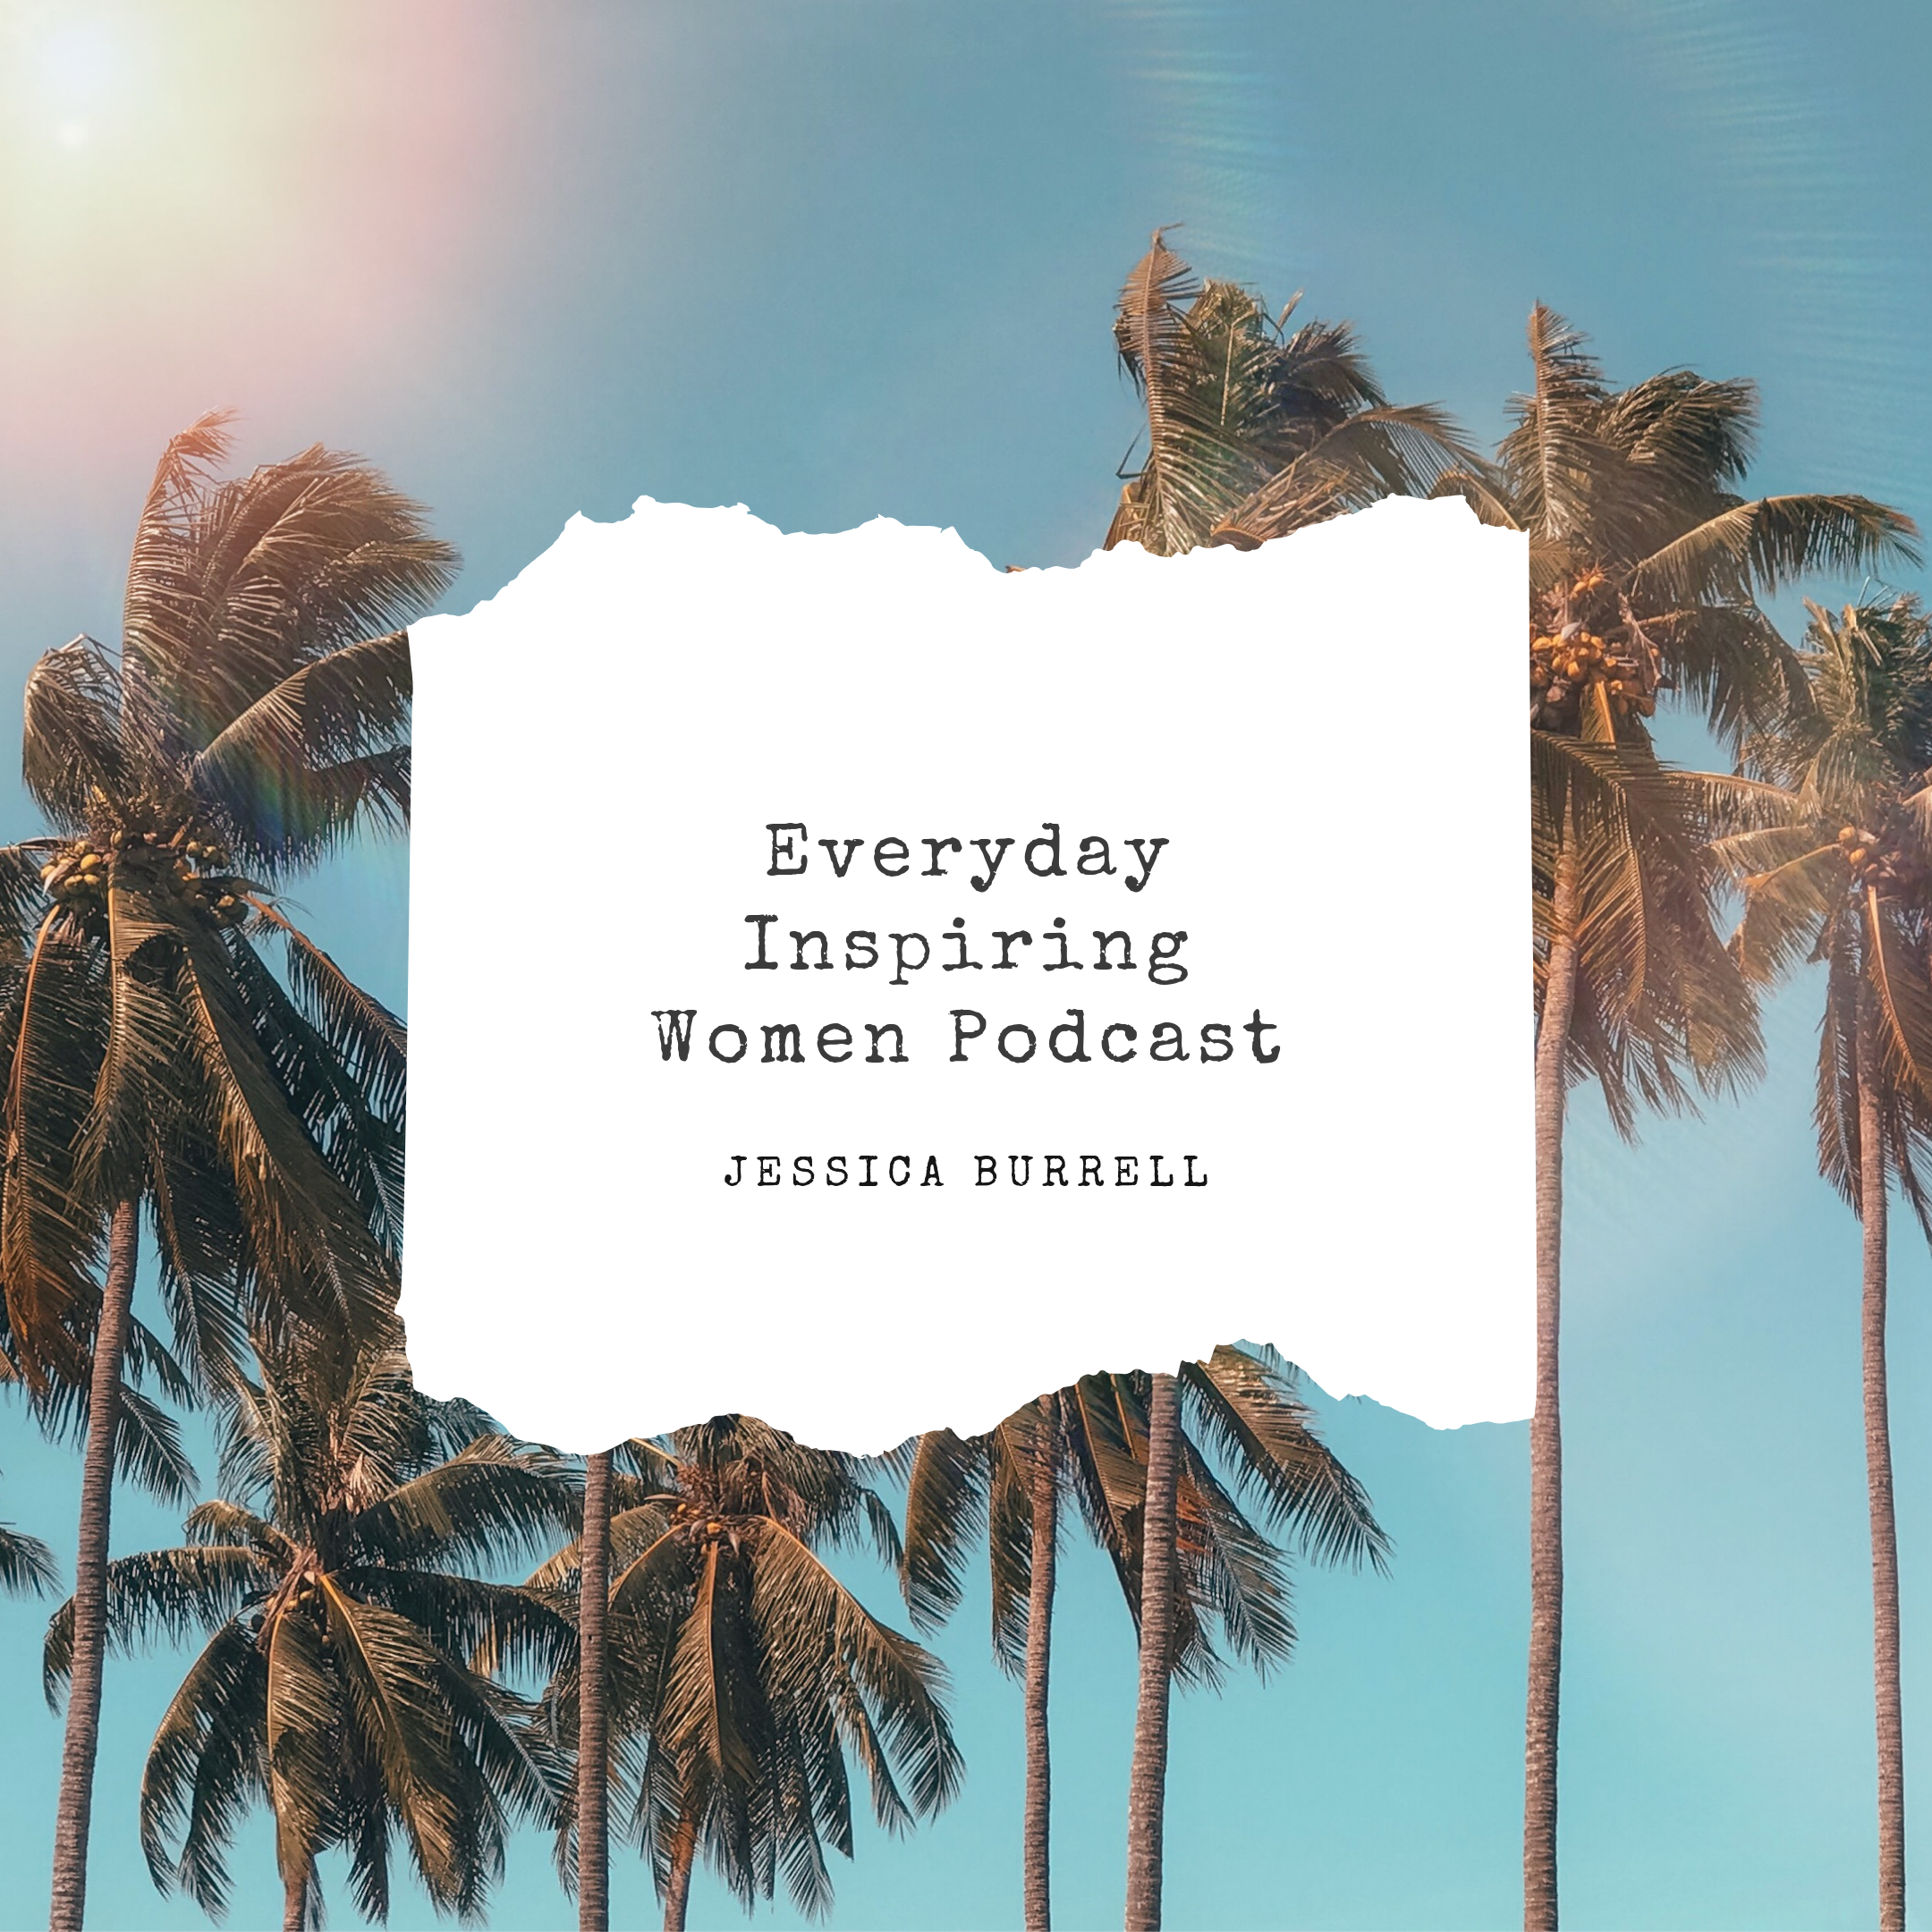 Everyday Inspiring Women Podcast - Listen in as Serena chats with Jessica Burrell.